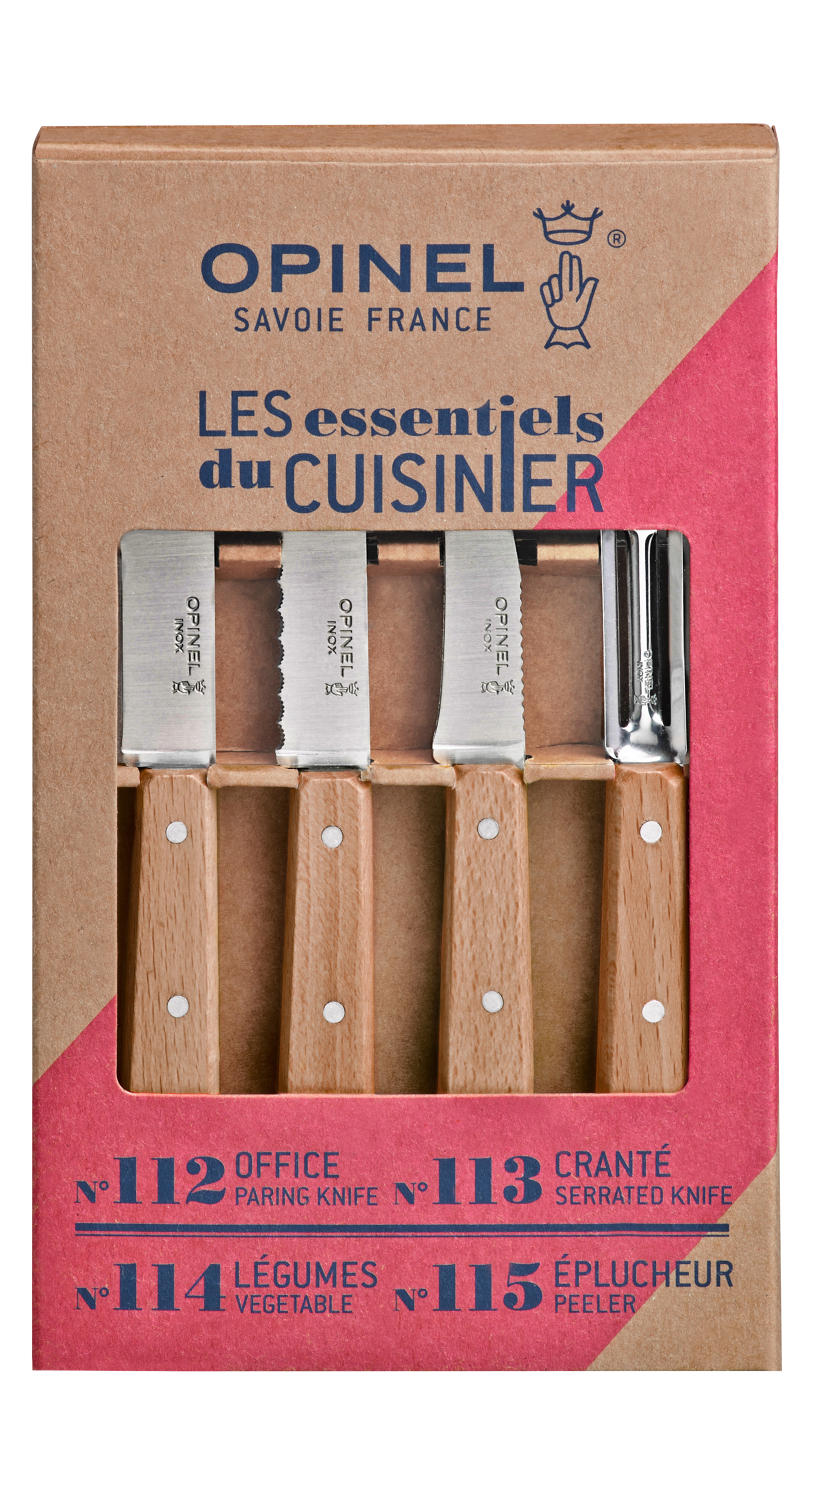 Opinel 'Les Essentiels' Mixed set 4 kitchen knives - Beech